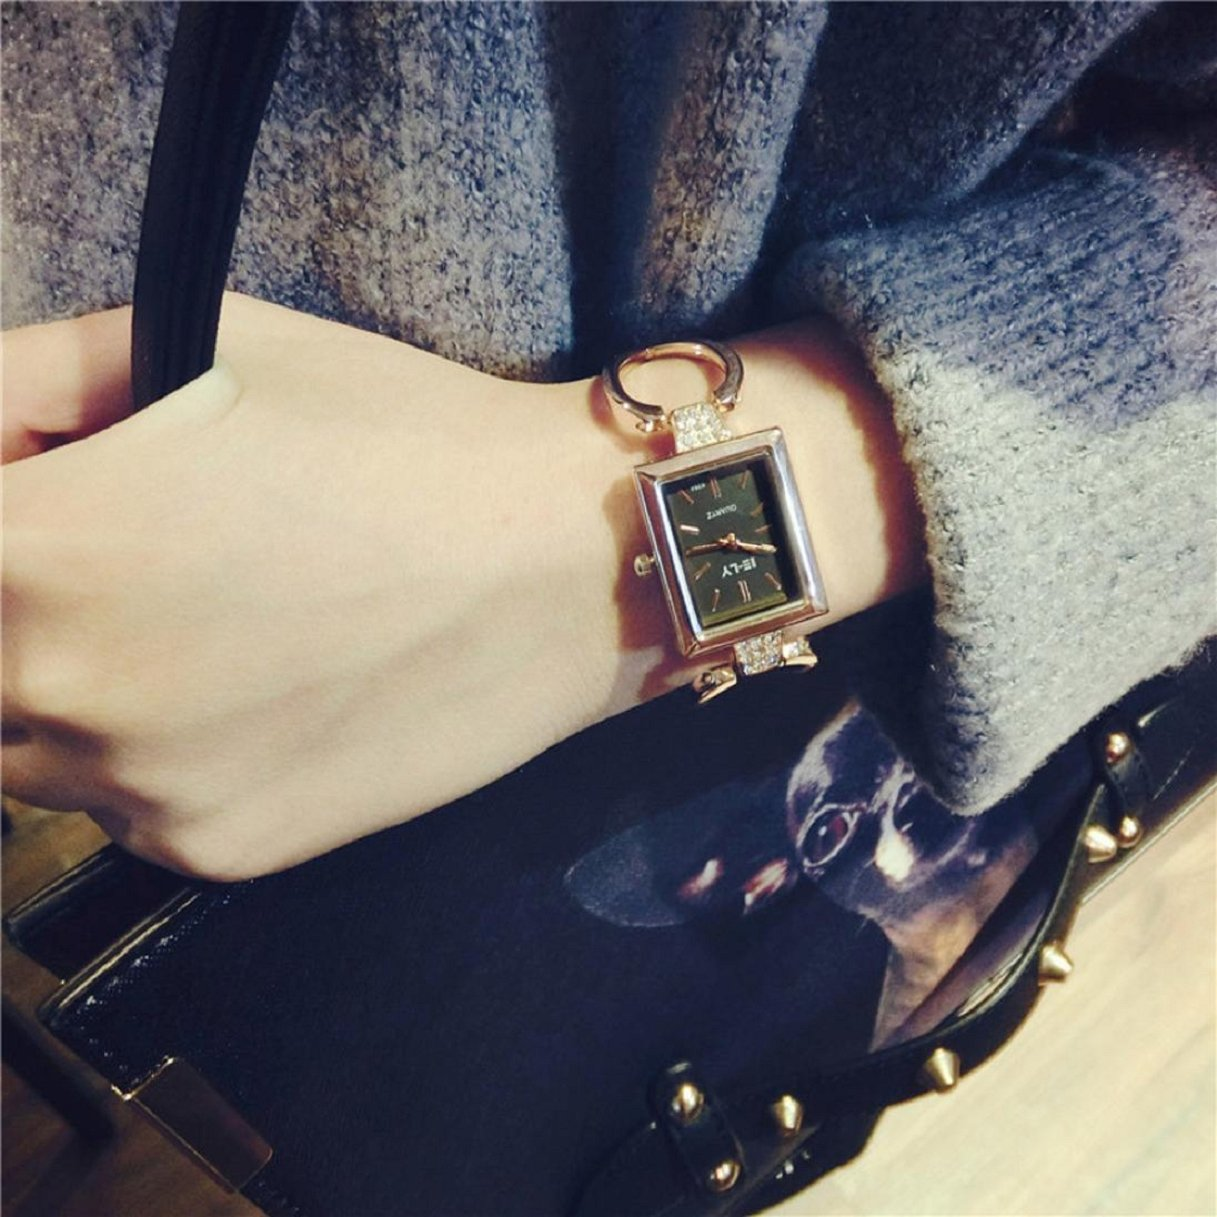 Amazon.com: Women Watch, Lookatool Fashion Female Bracelet Rectangular Fashion Temperament Watch: Lookatool: Watches